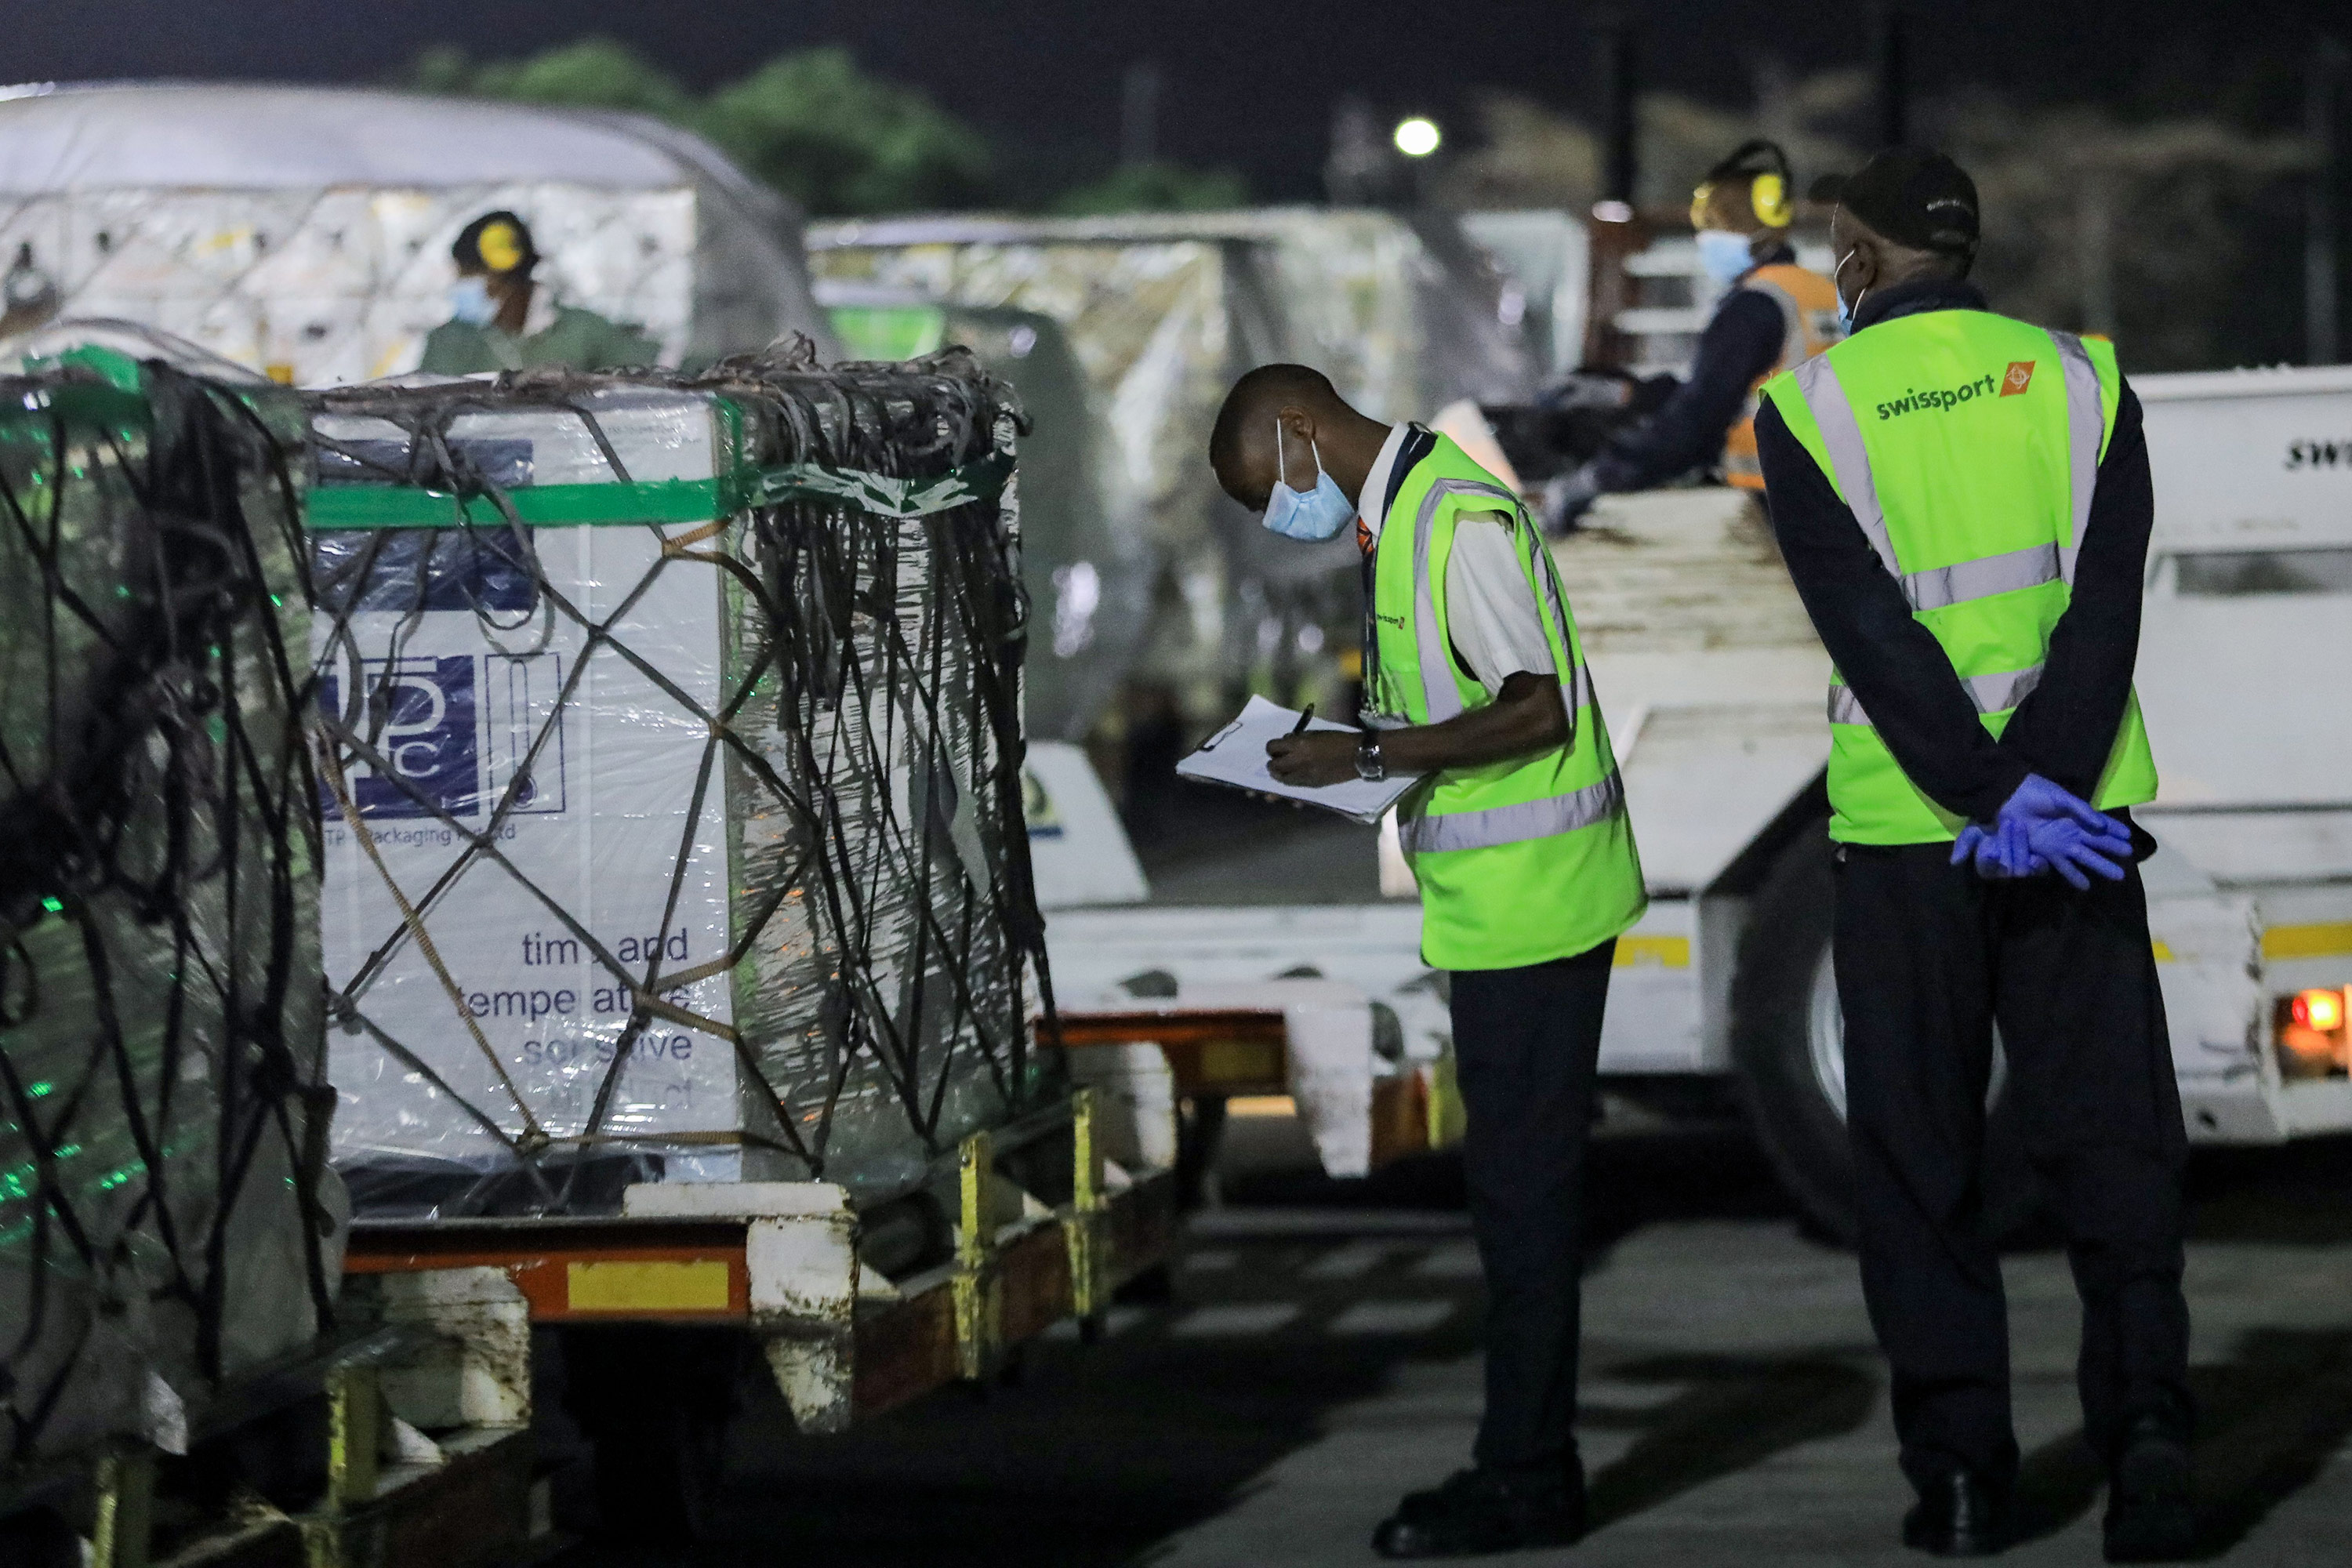 Oxford/AstaZeneca Covid-19 vaccines are unloaded after arriving at Jomo Kenyatta International Airport in Nairobi, Kenya, on March 3.